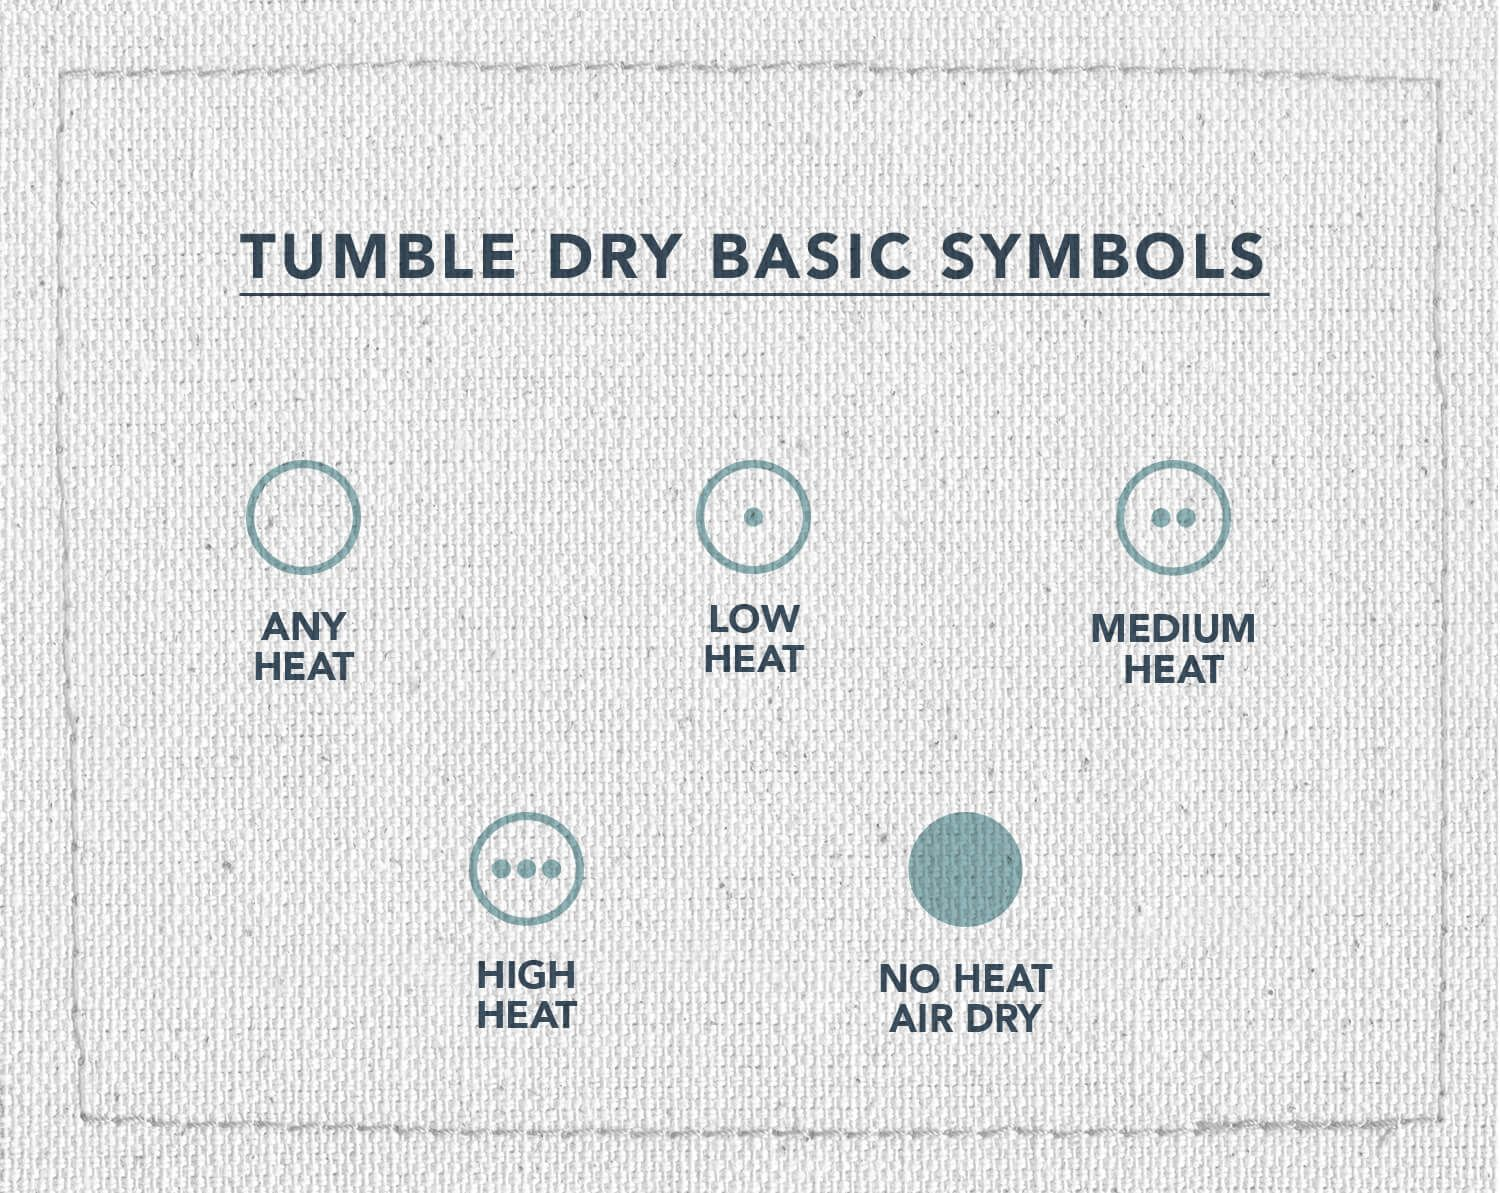 An infographic of three laundry care symbols, indicating what symbols indicate tumble dry instructions, any heat, low heat, medium heat, high heat, and no heat air dray